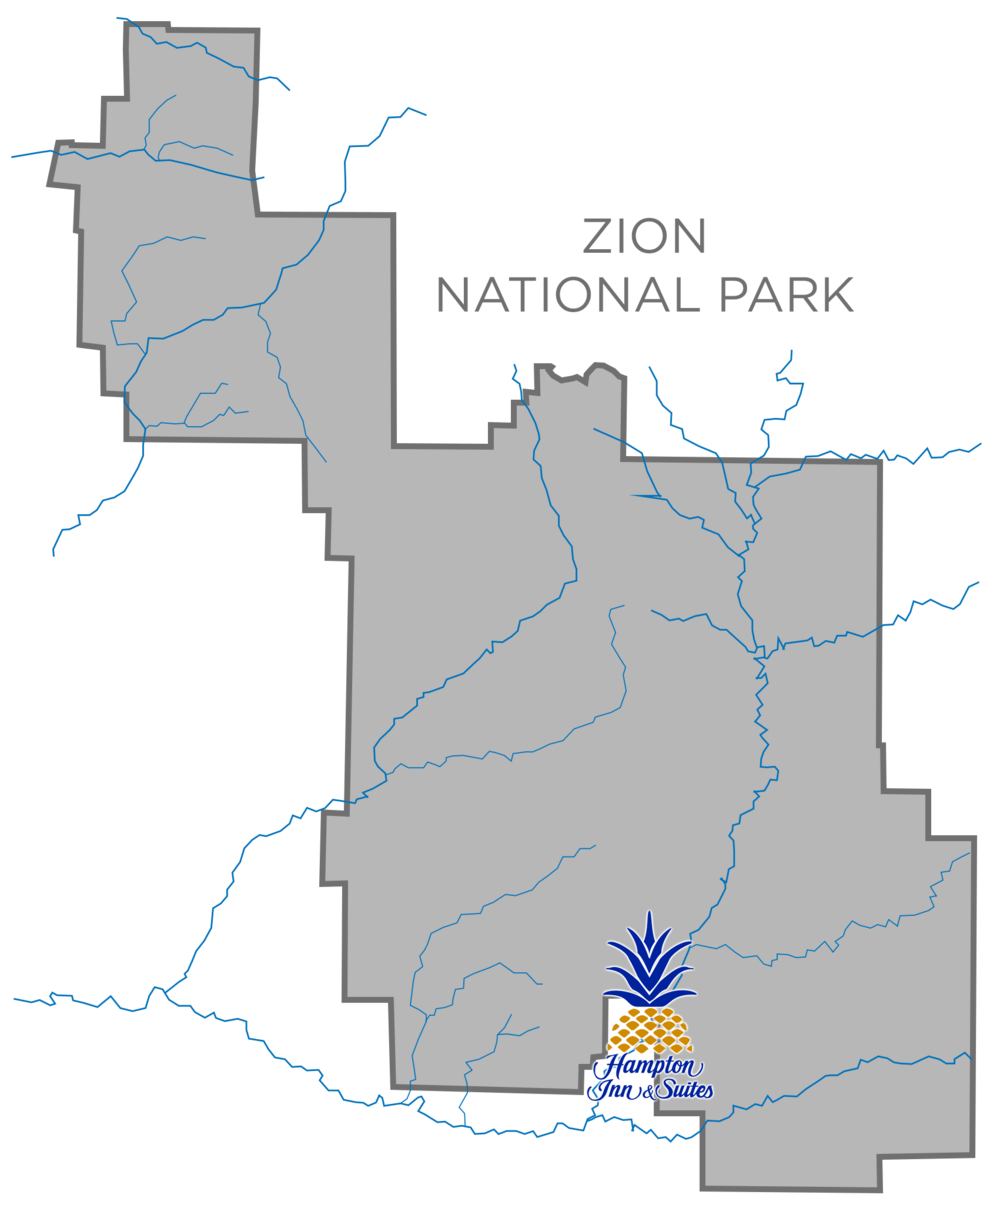 Zion Map - Hampton.png